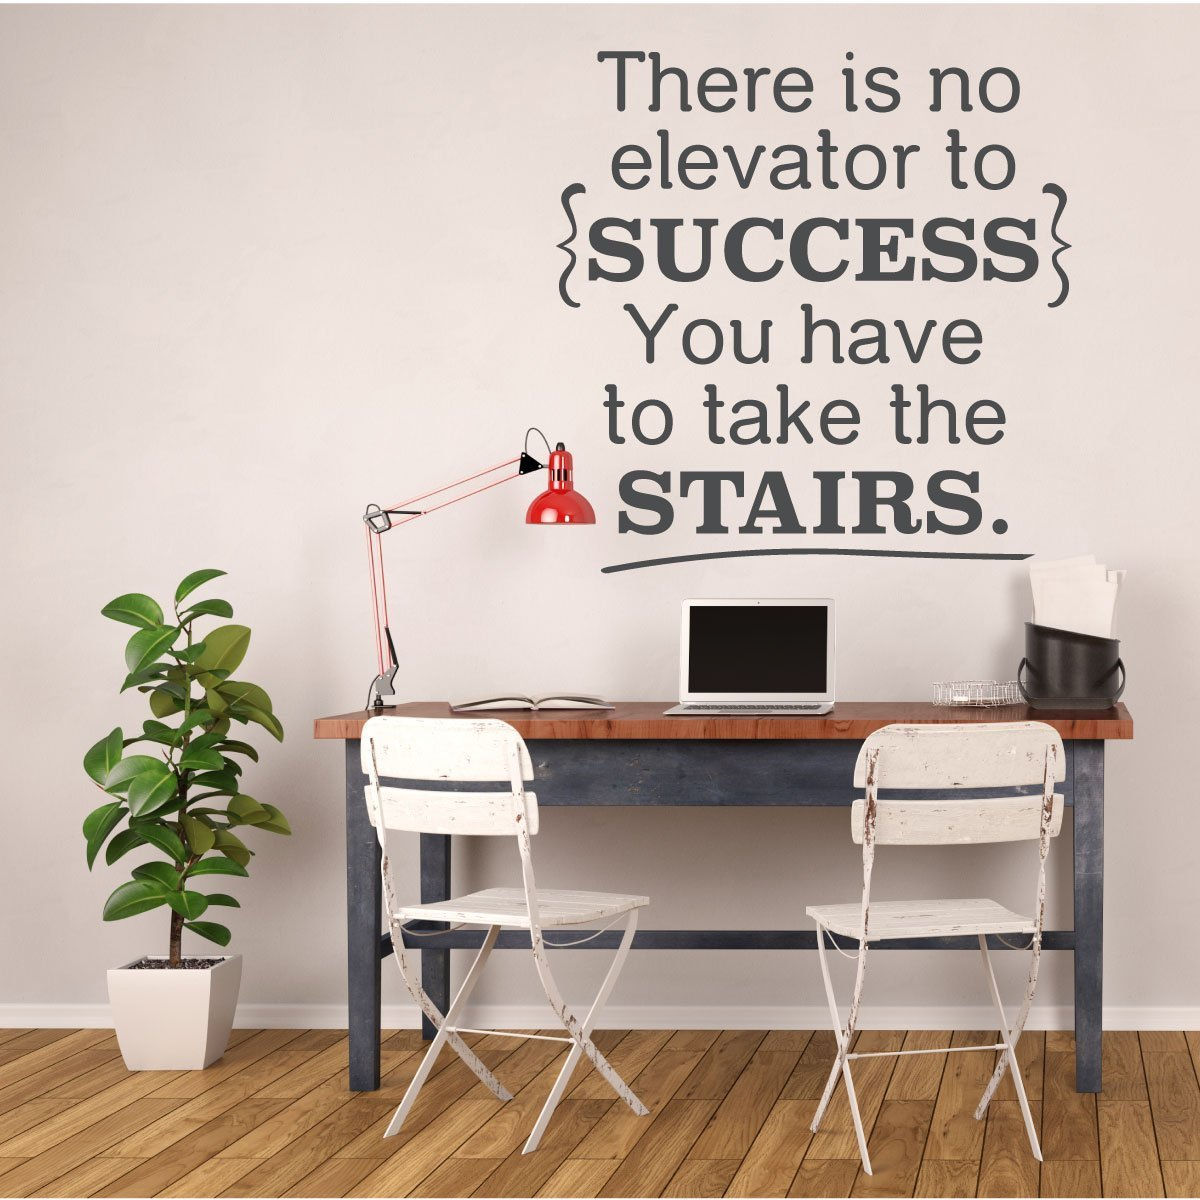 Success Quotes for Office, Classroom Decorations and Teachers - Inspiriational Vinyl Wall Decal Signs, There is No Elevator to Success